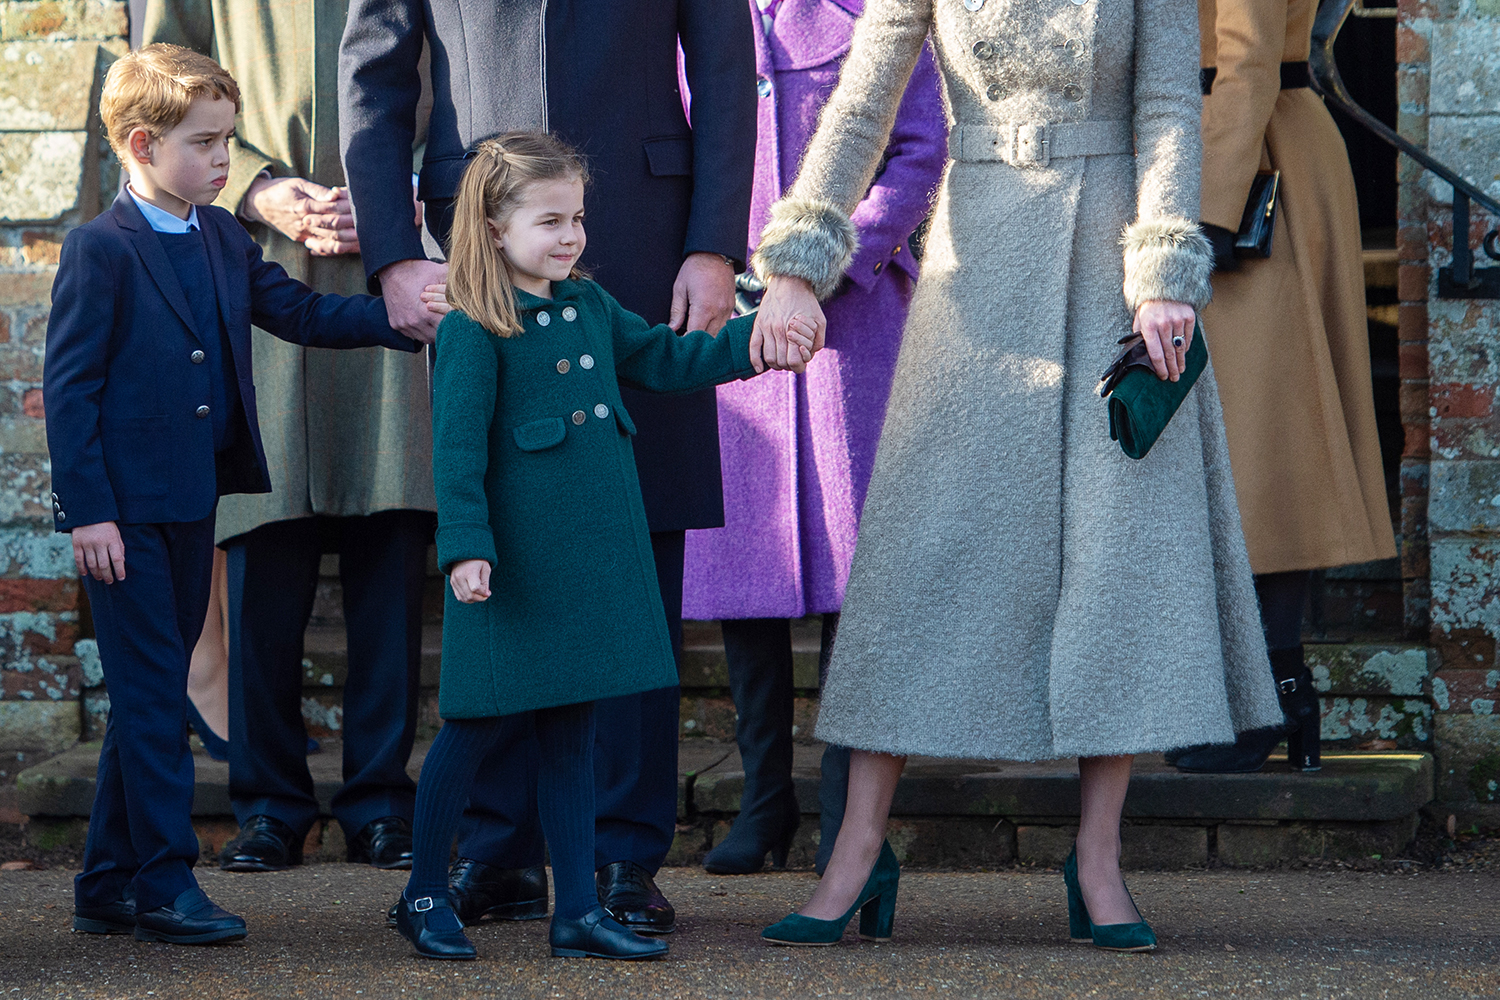 Prince George and Princess Charlotte after attending the Christmas Day morning church service at St Mary Magdalene Church in Sandringham, Norfolk. (Photo by Joe Giddens/PA Images via Getty Images)